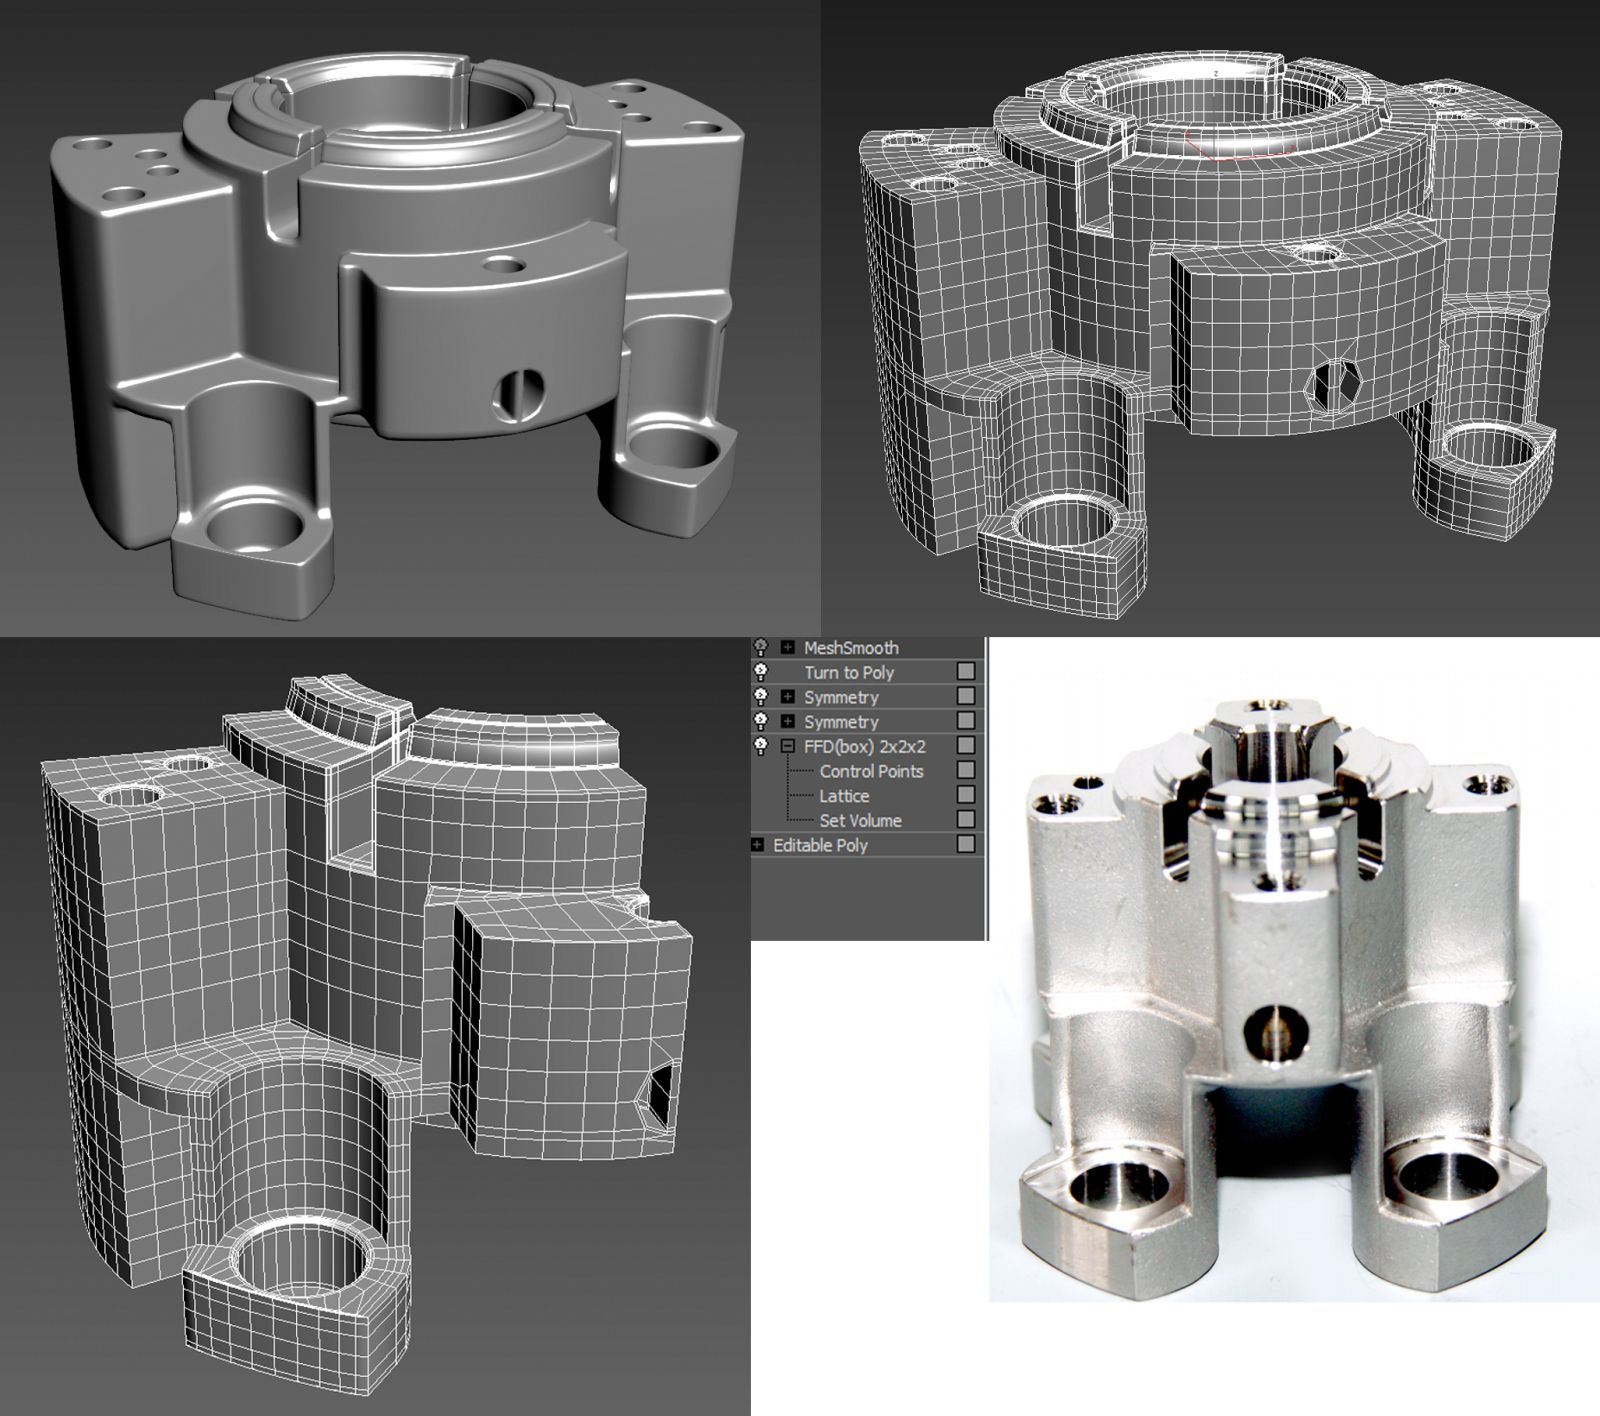 Faq How U Model Dem Shapes Hands On Mini Tuts For Mechanical Sub D Aka Add More Geo Page 168 Polycoun Hard Surface Modeling 3d Modeling Tutorial 3d Model